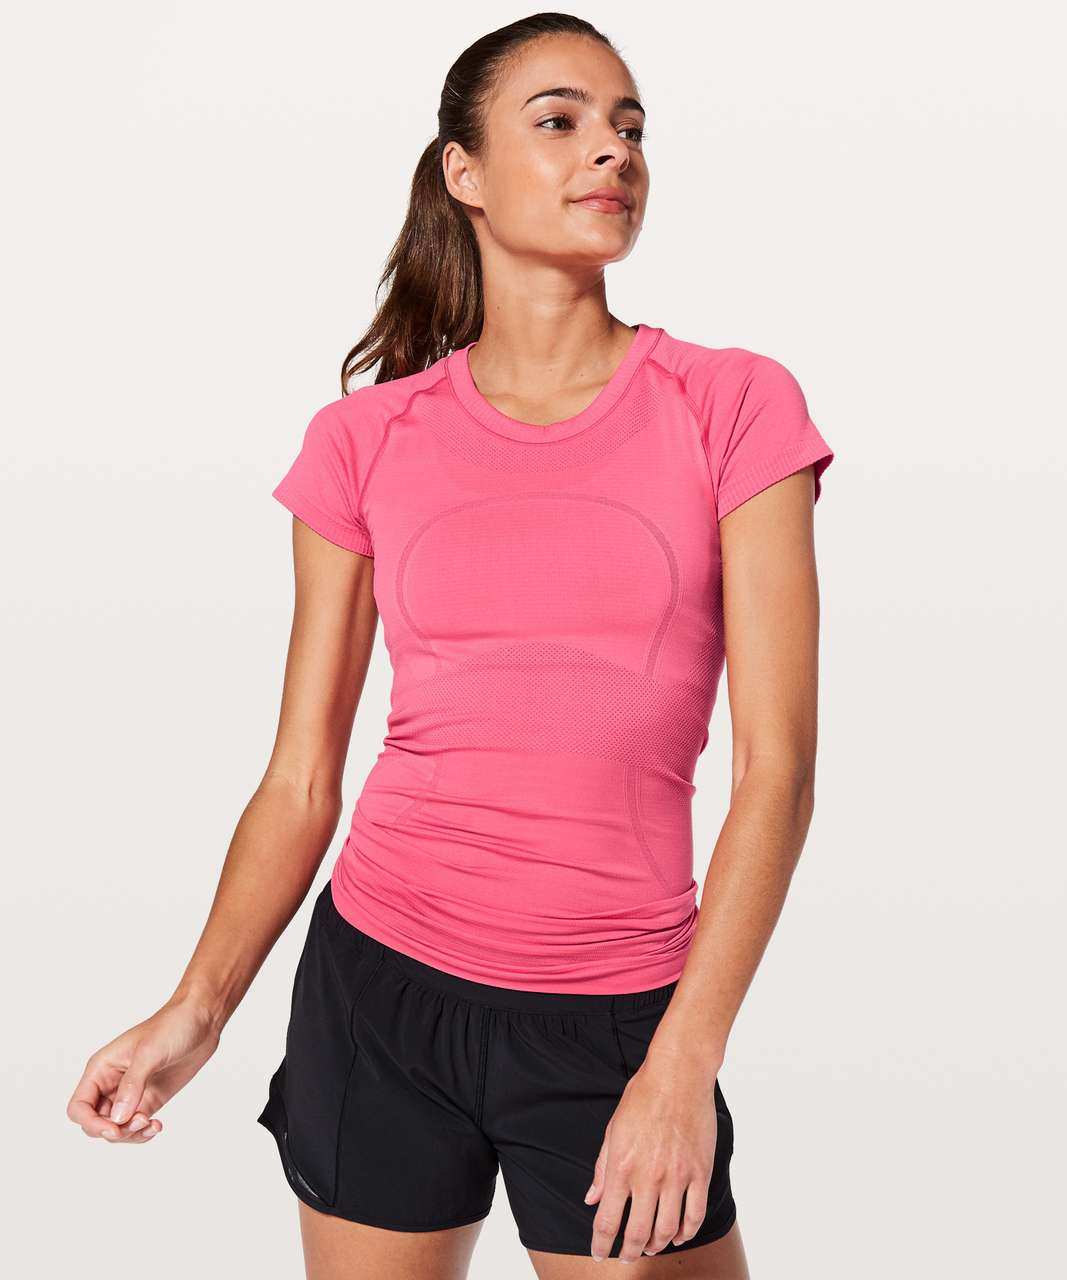 Lululemon Swiftly Tech Short Sleeve Crew - Glossy / Glossy